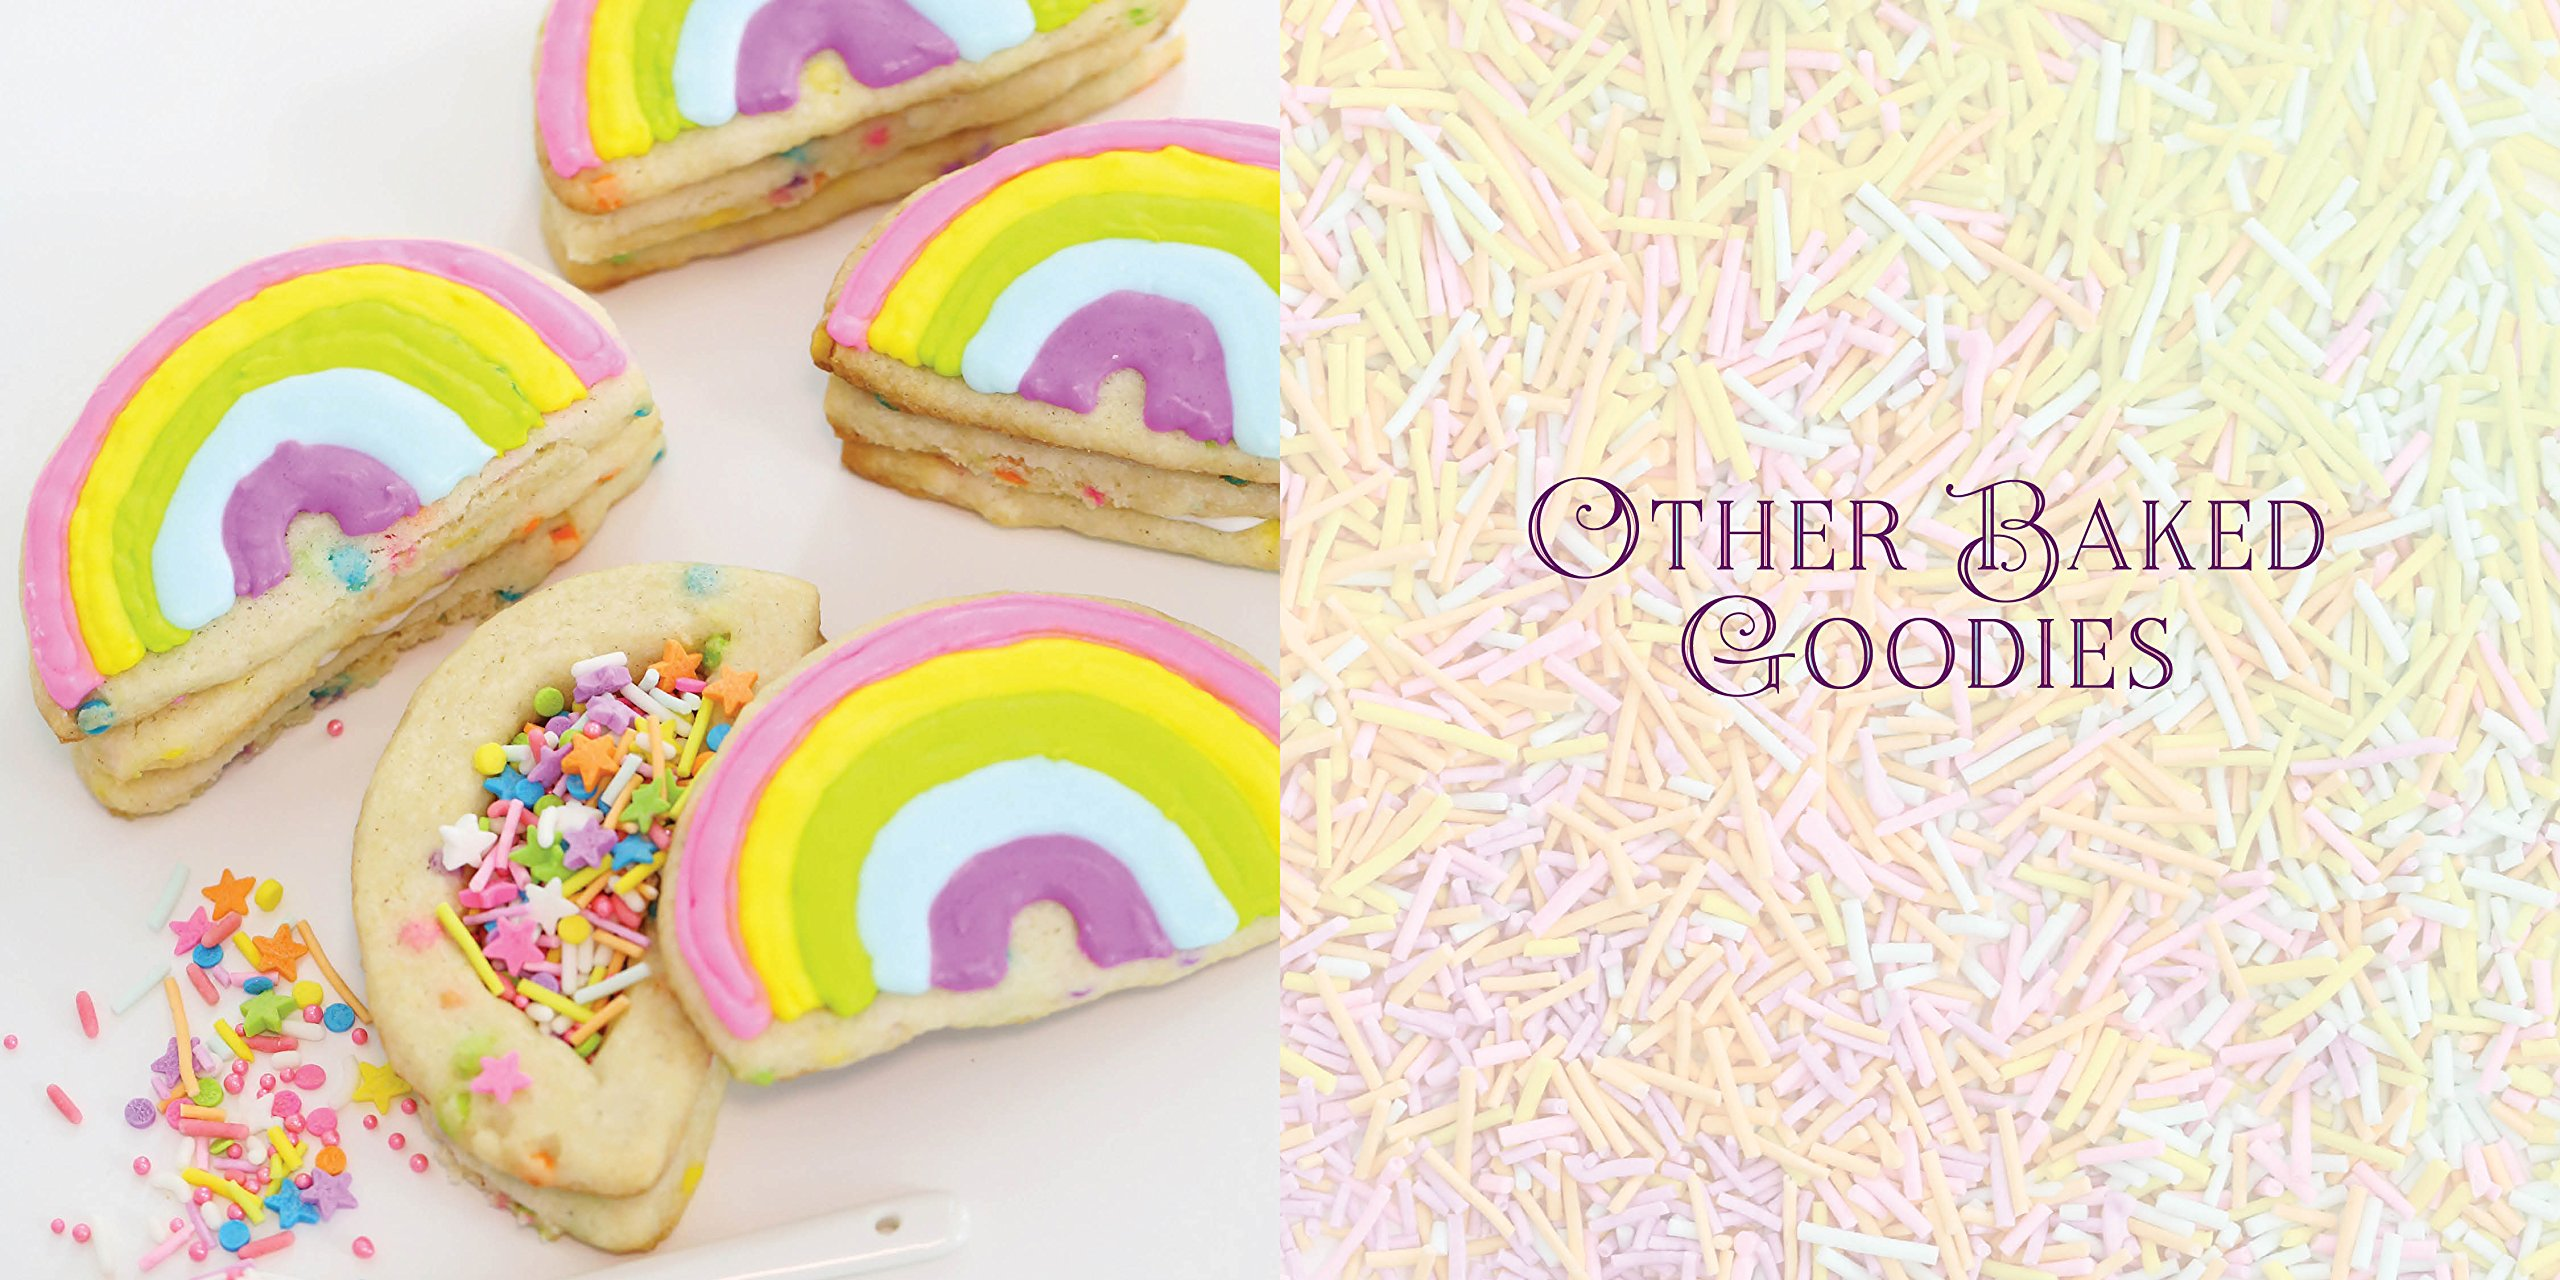 Unicorn Food: Rainbow Treats and Colorful Creations to Enjoy and Admire (Whimsical Treats) 7